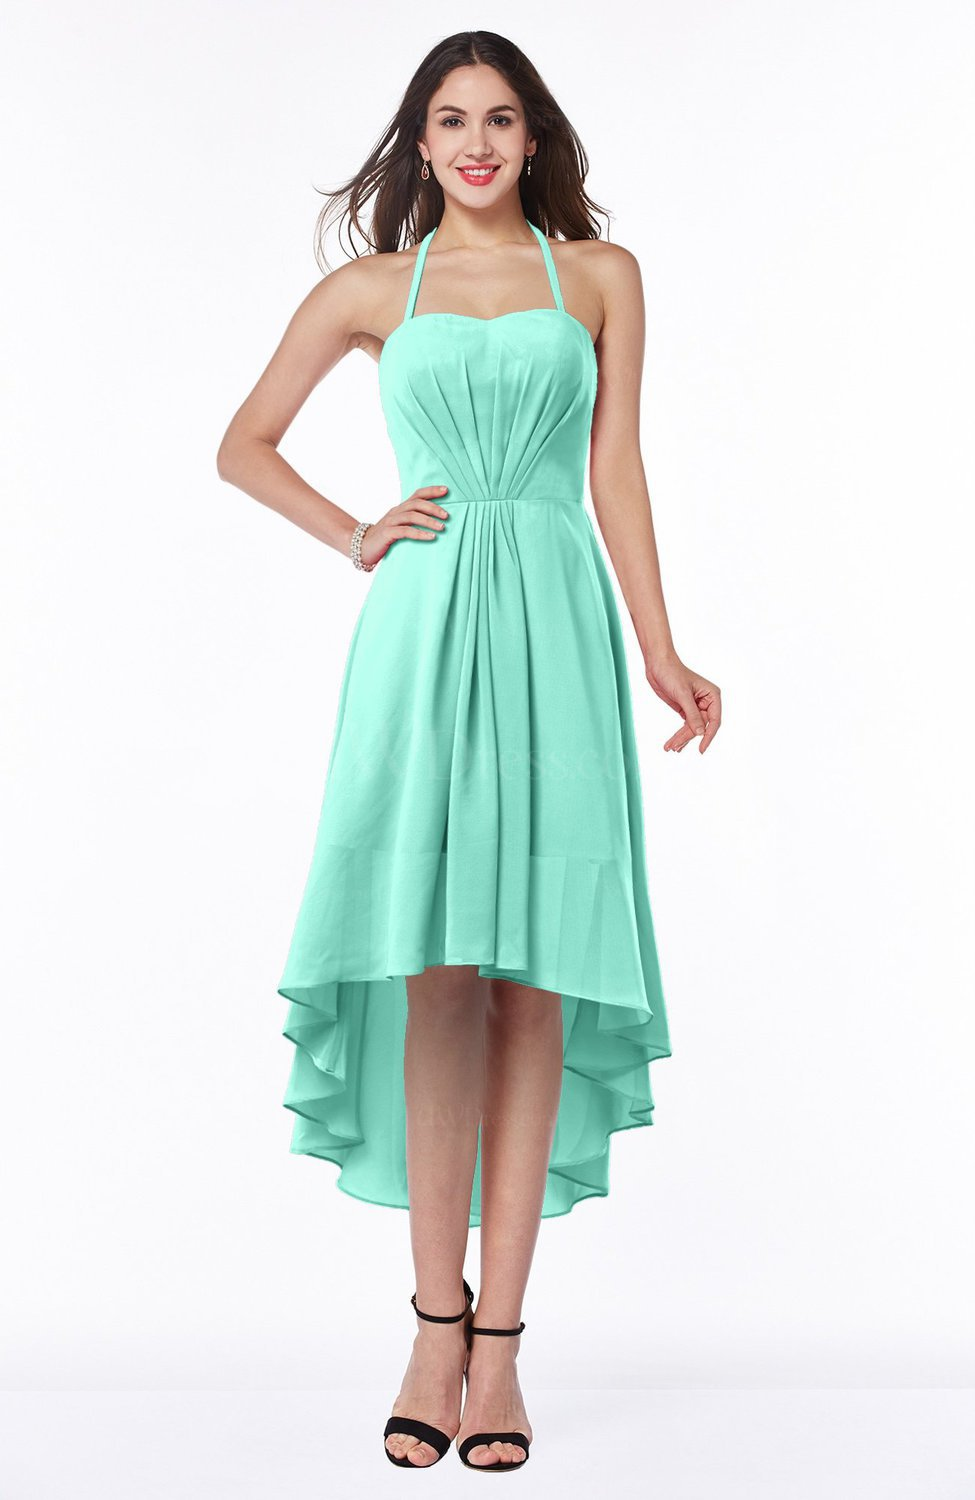 Plus size bridesmaid dresses uwdress seafoam green casual a line sleeveless zip up chiffon asymmetric plus size bridesmaid dresses ombrellifo Image collections